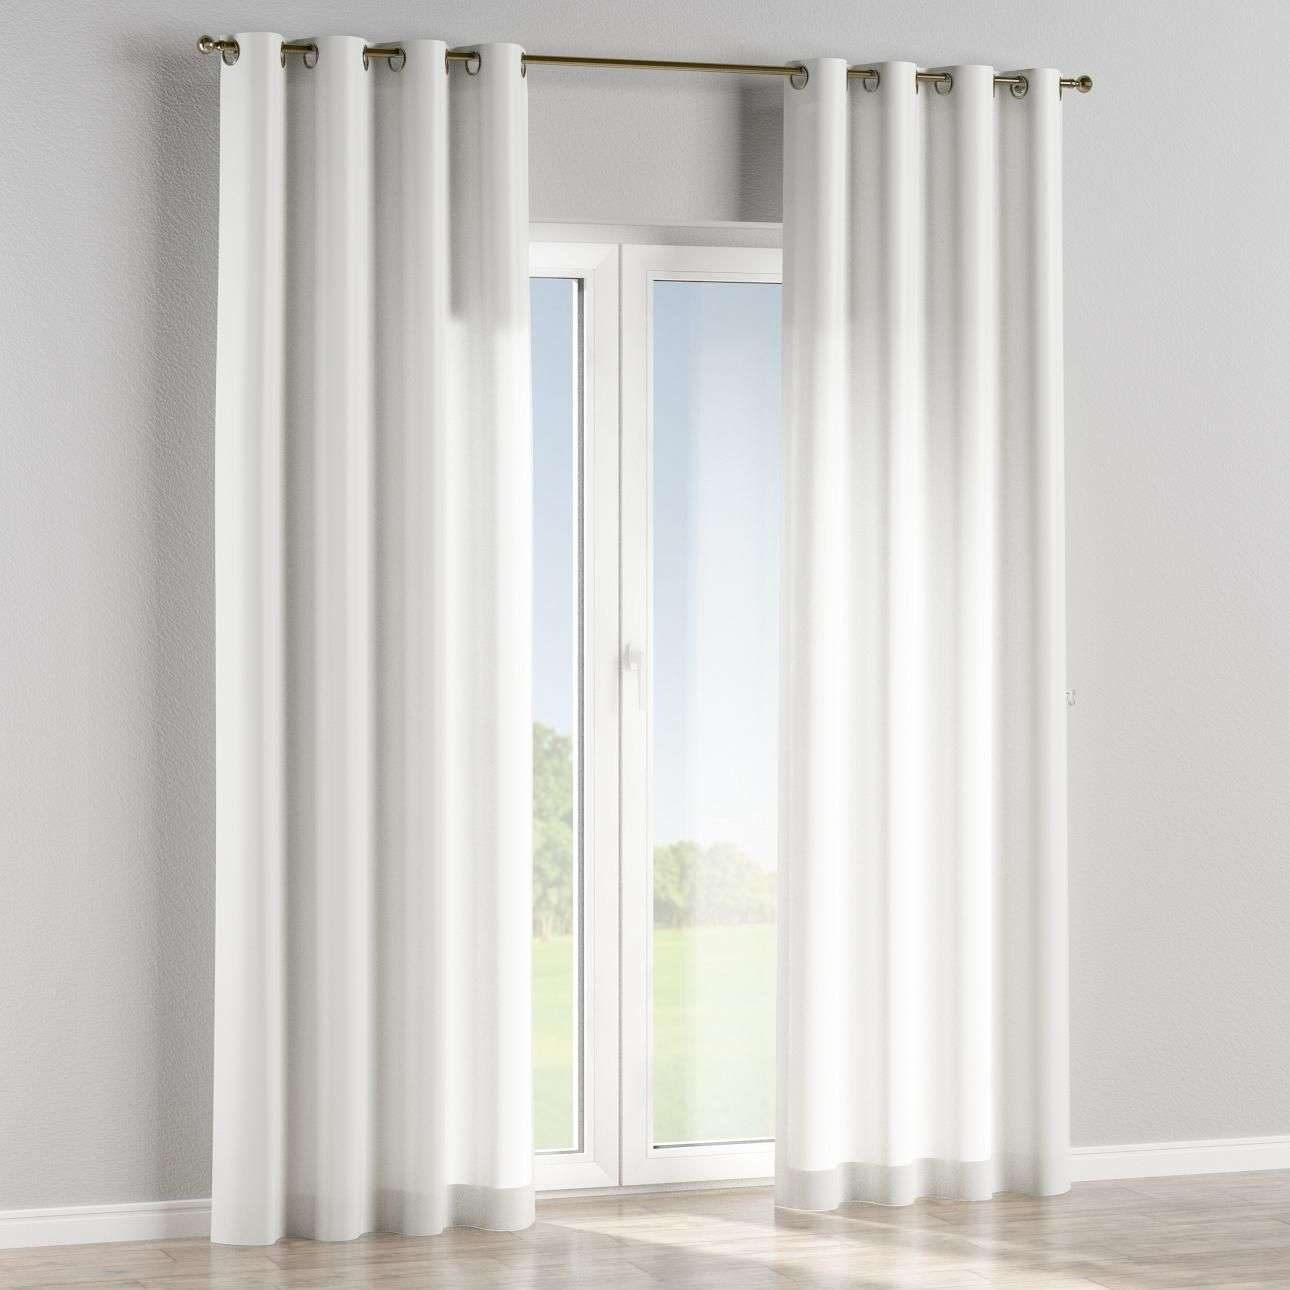 Eyelet curtains in collection Milano, fabric: 150-34